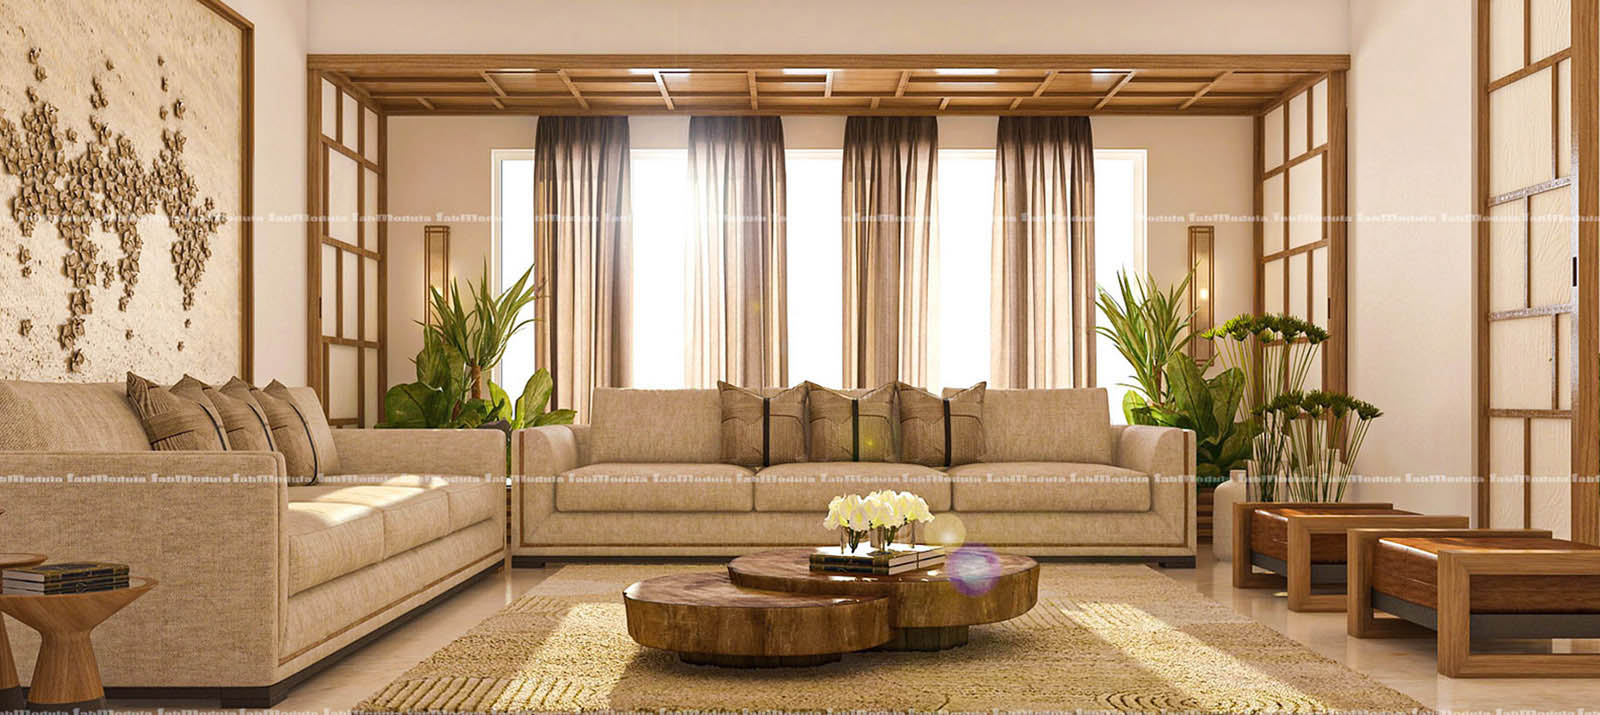 Fabmodula interior designers bangalore best interior design for Interior designs in bangalore